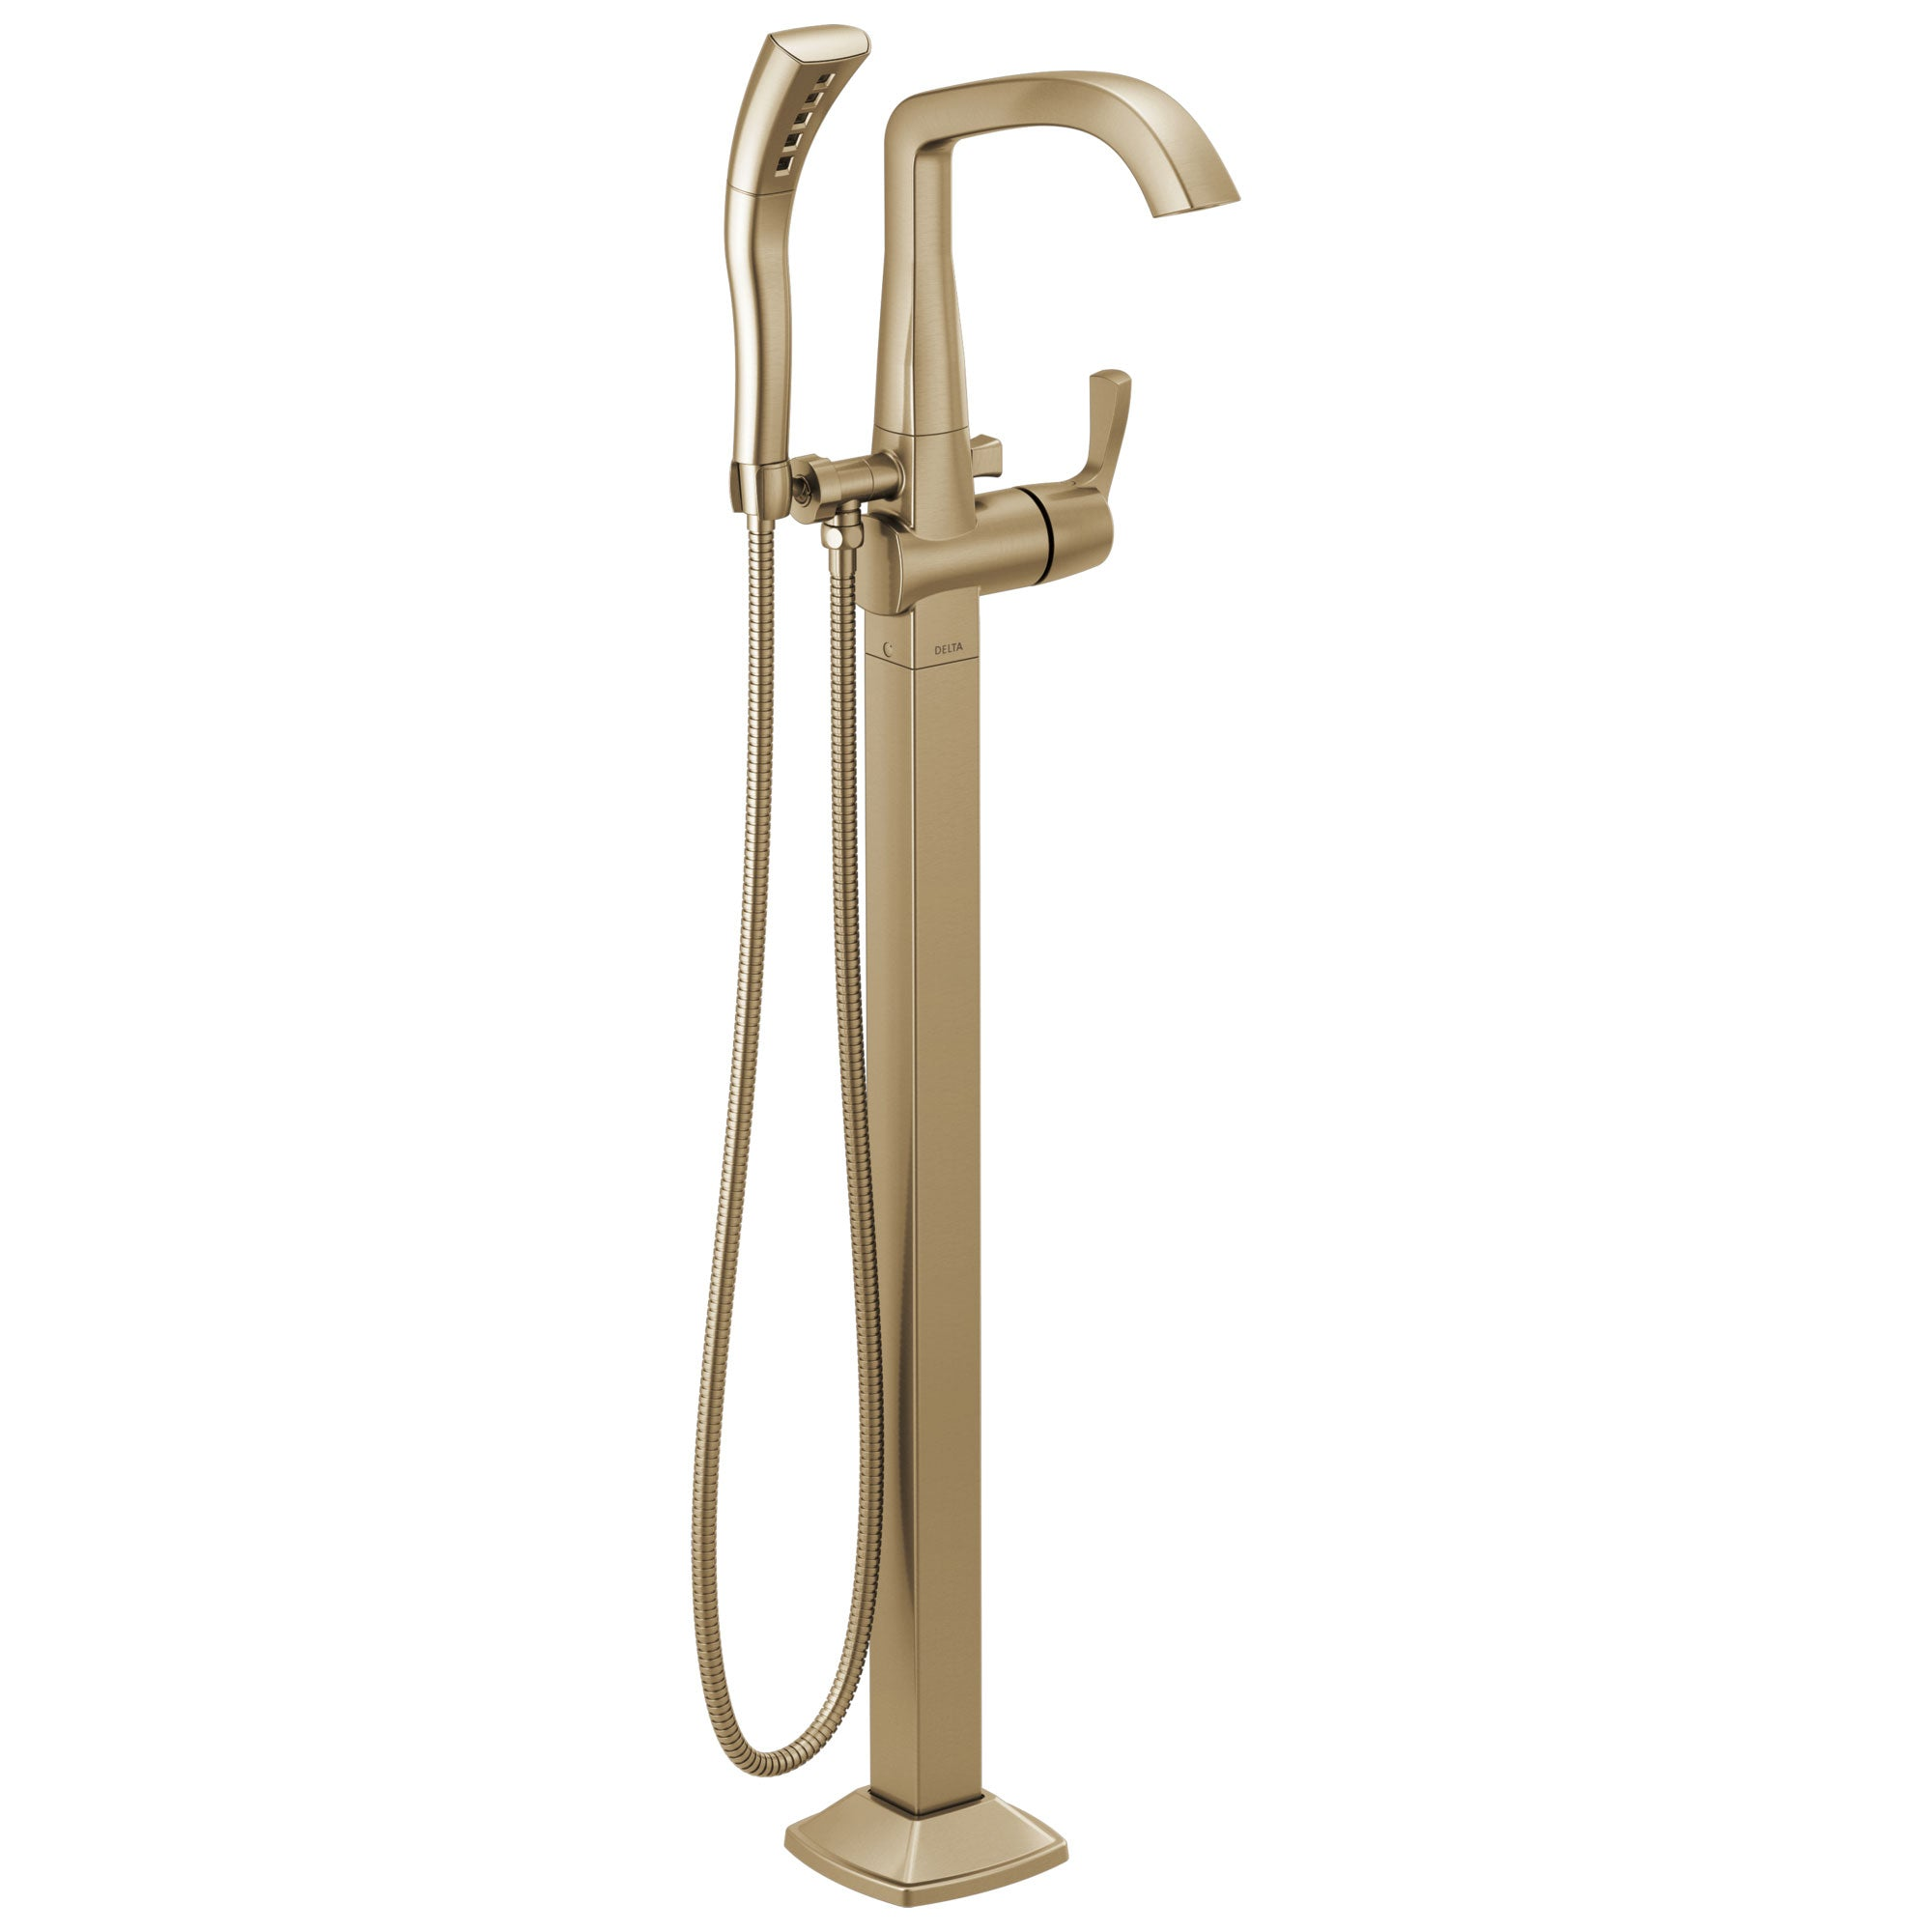 Delta Stryke Champagne Bronze Finish Single Lever Handle Floor Mount Tub Filler Faucet with Hand Sprayer Includes Rough-in Valve D3037V